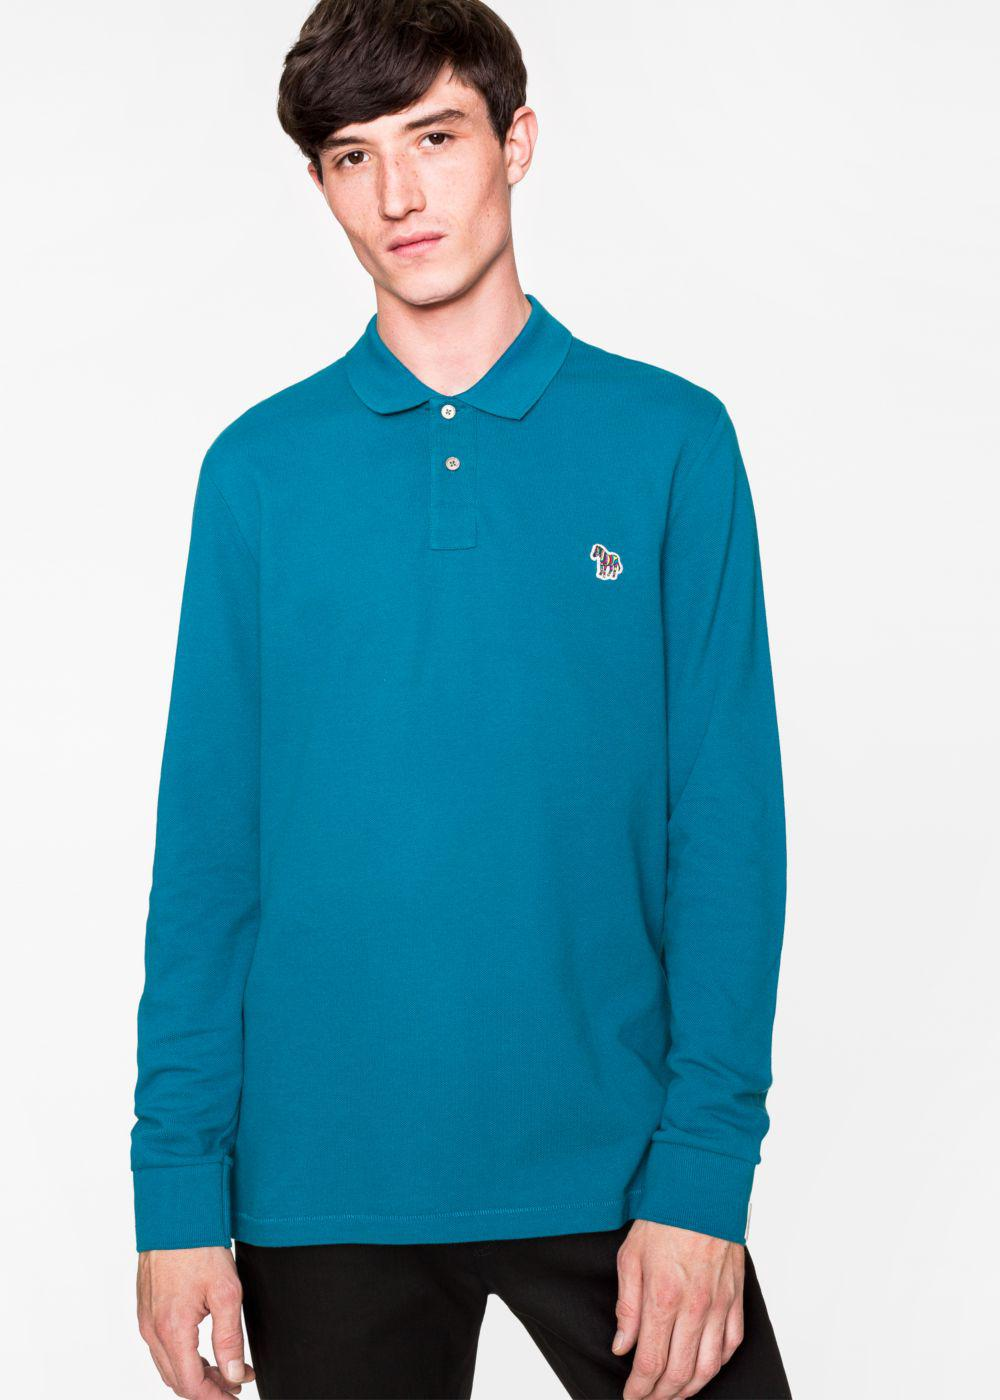 Lyst paul smith men 39 s teal organic cotton zebra logo for Mens teal polo shirt